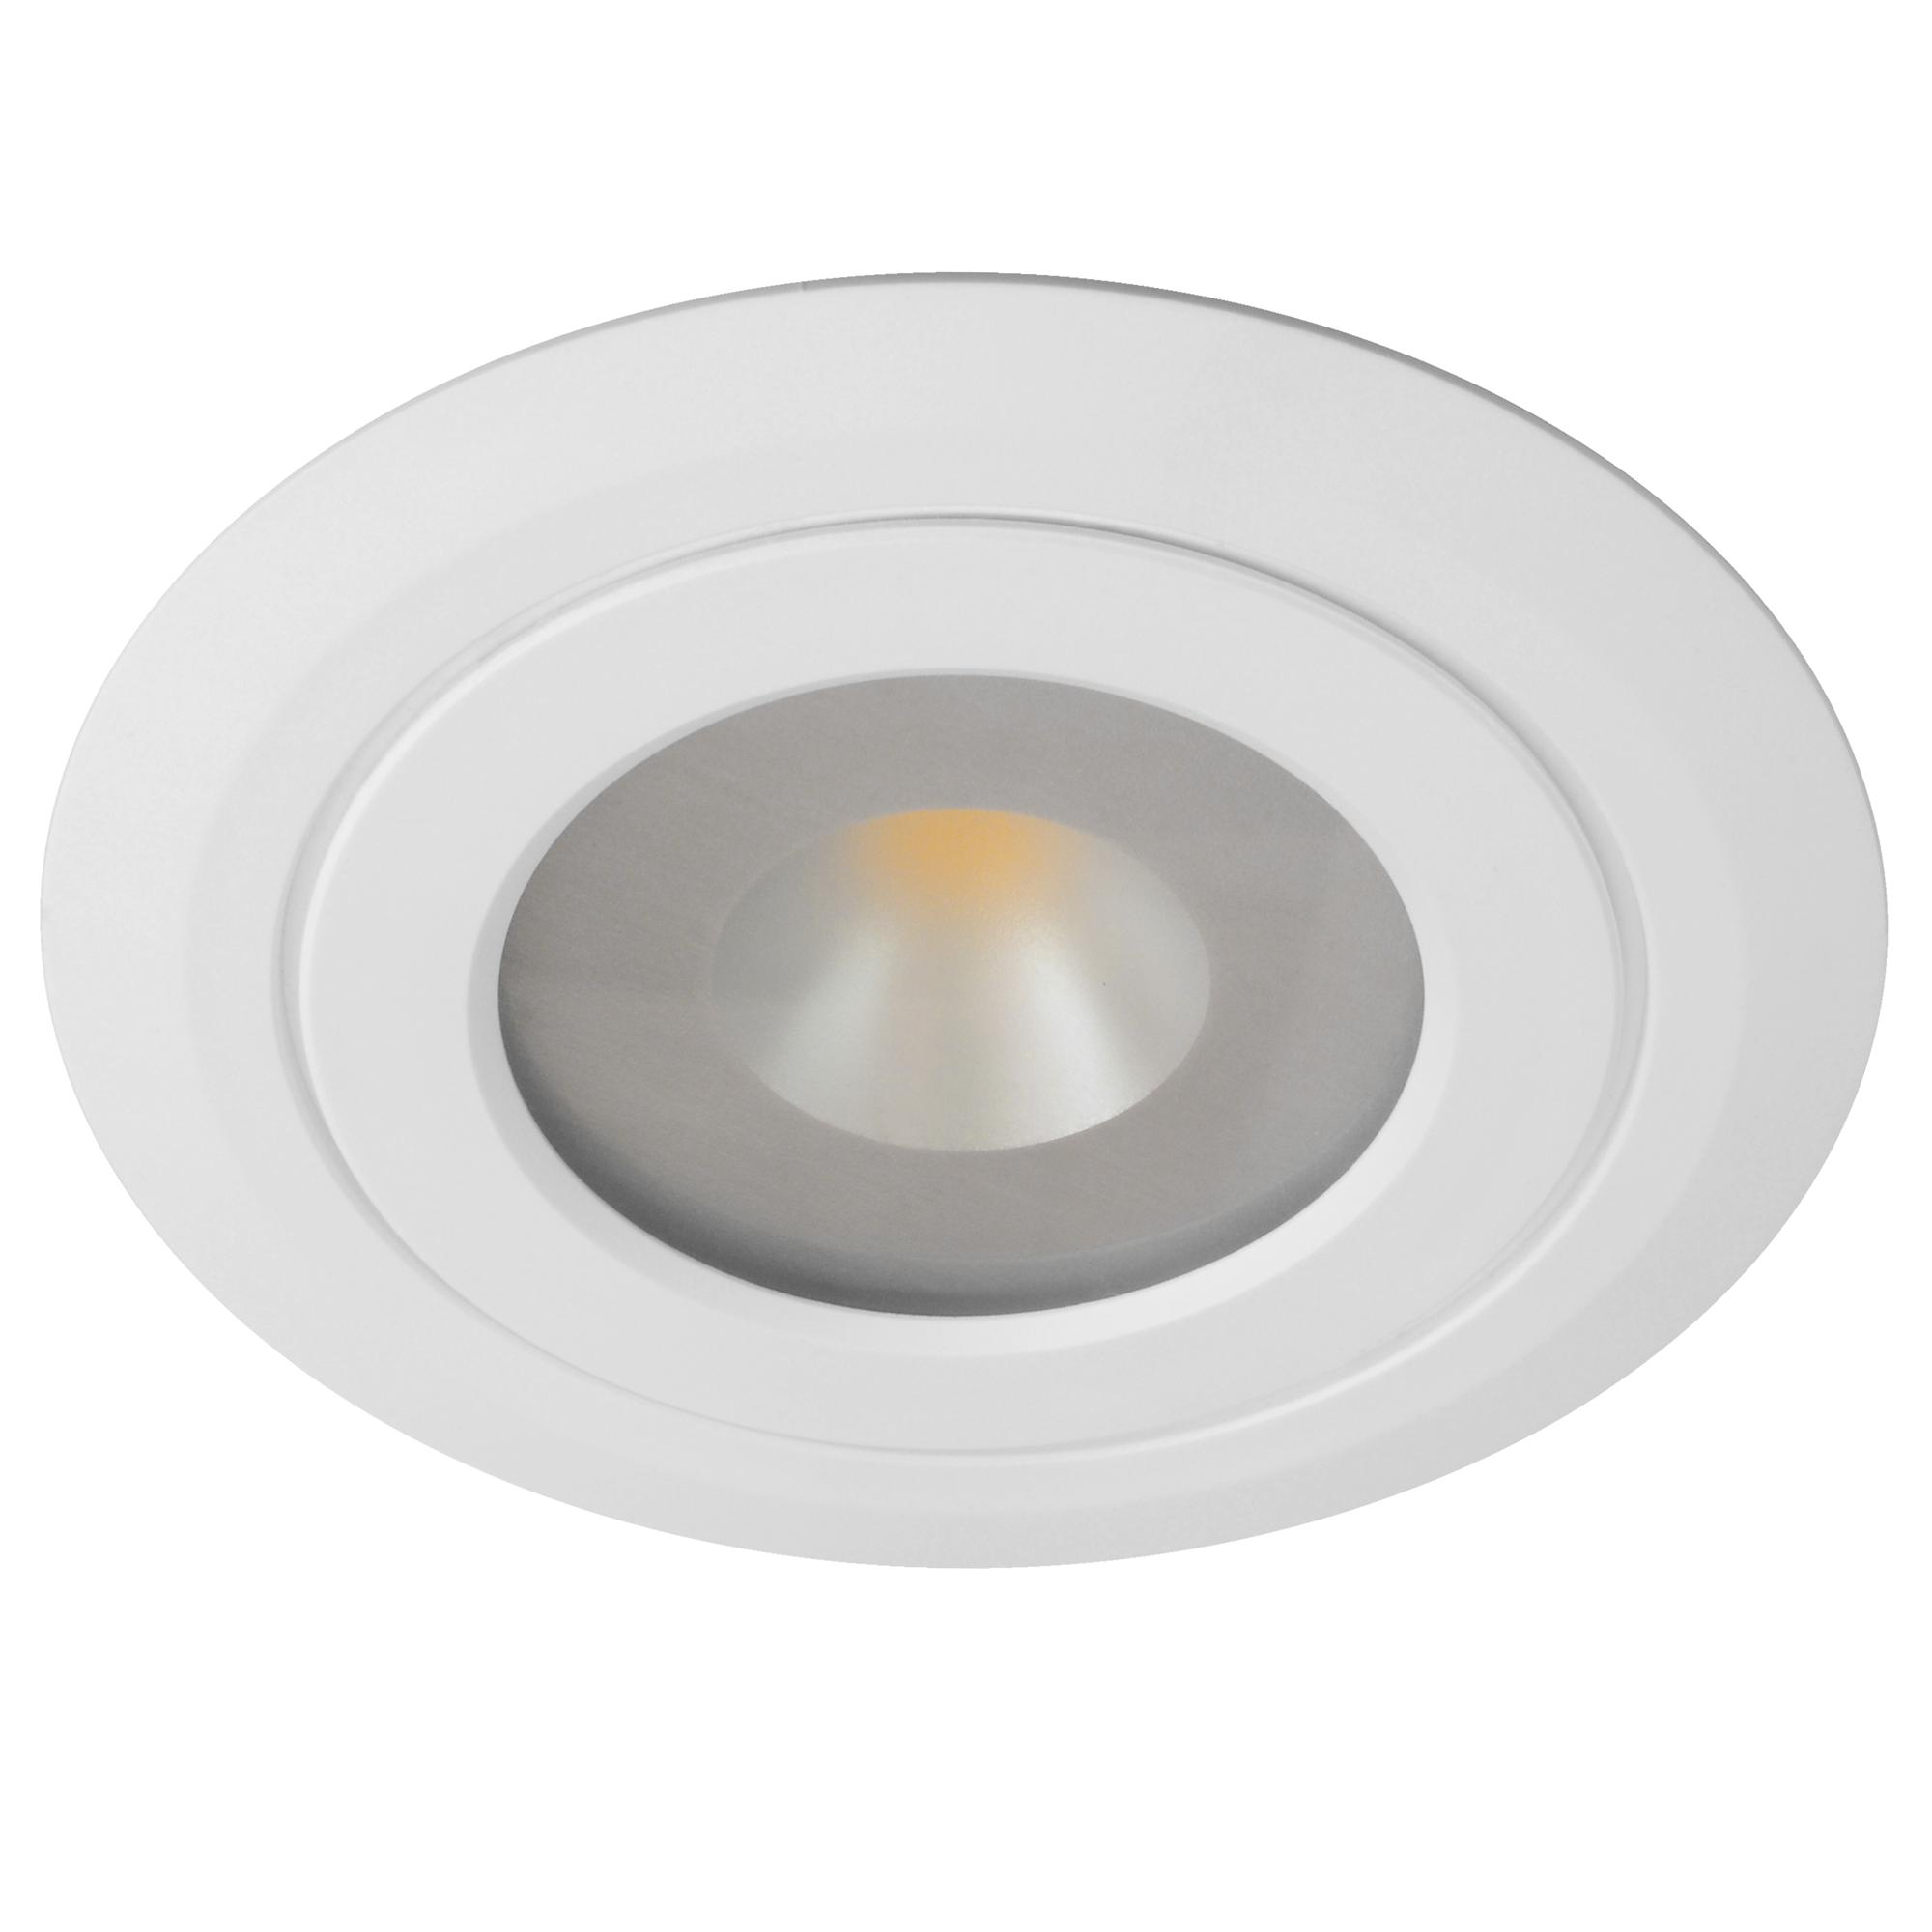 Led Kitchen Cabinet Downlights Led Diva 2 Spot 3000k Warm White 60 24v 4w White Mr